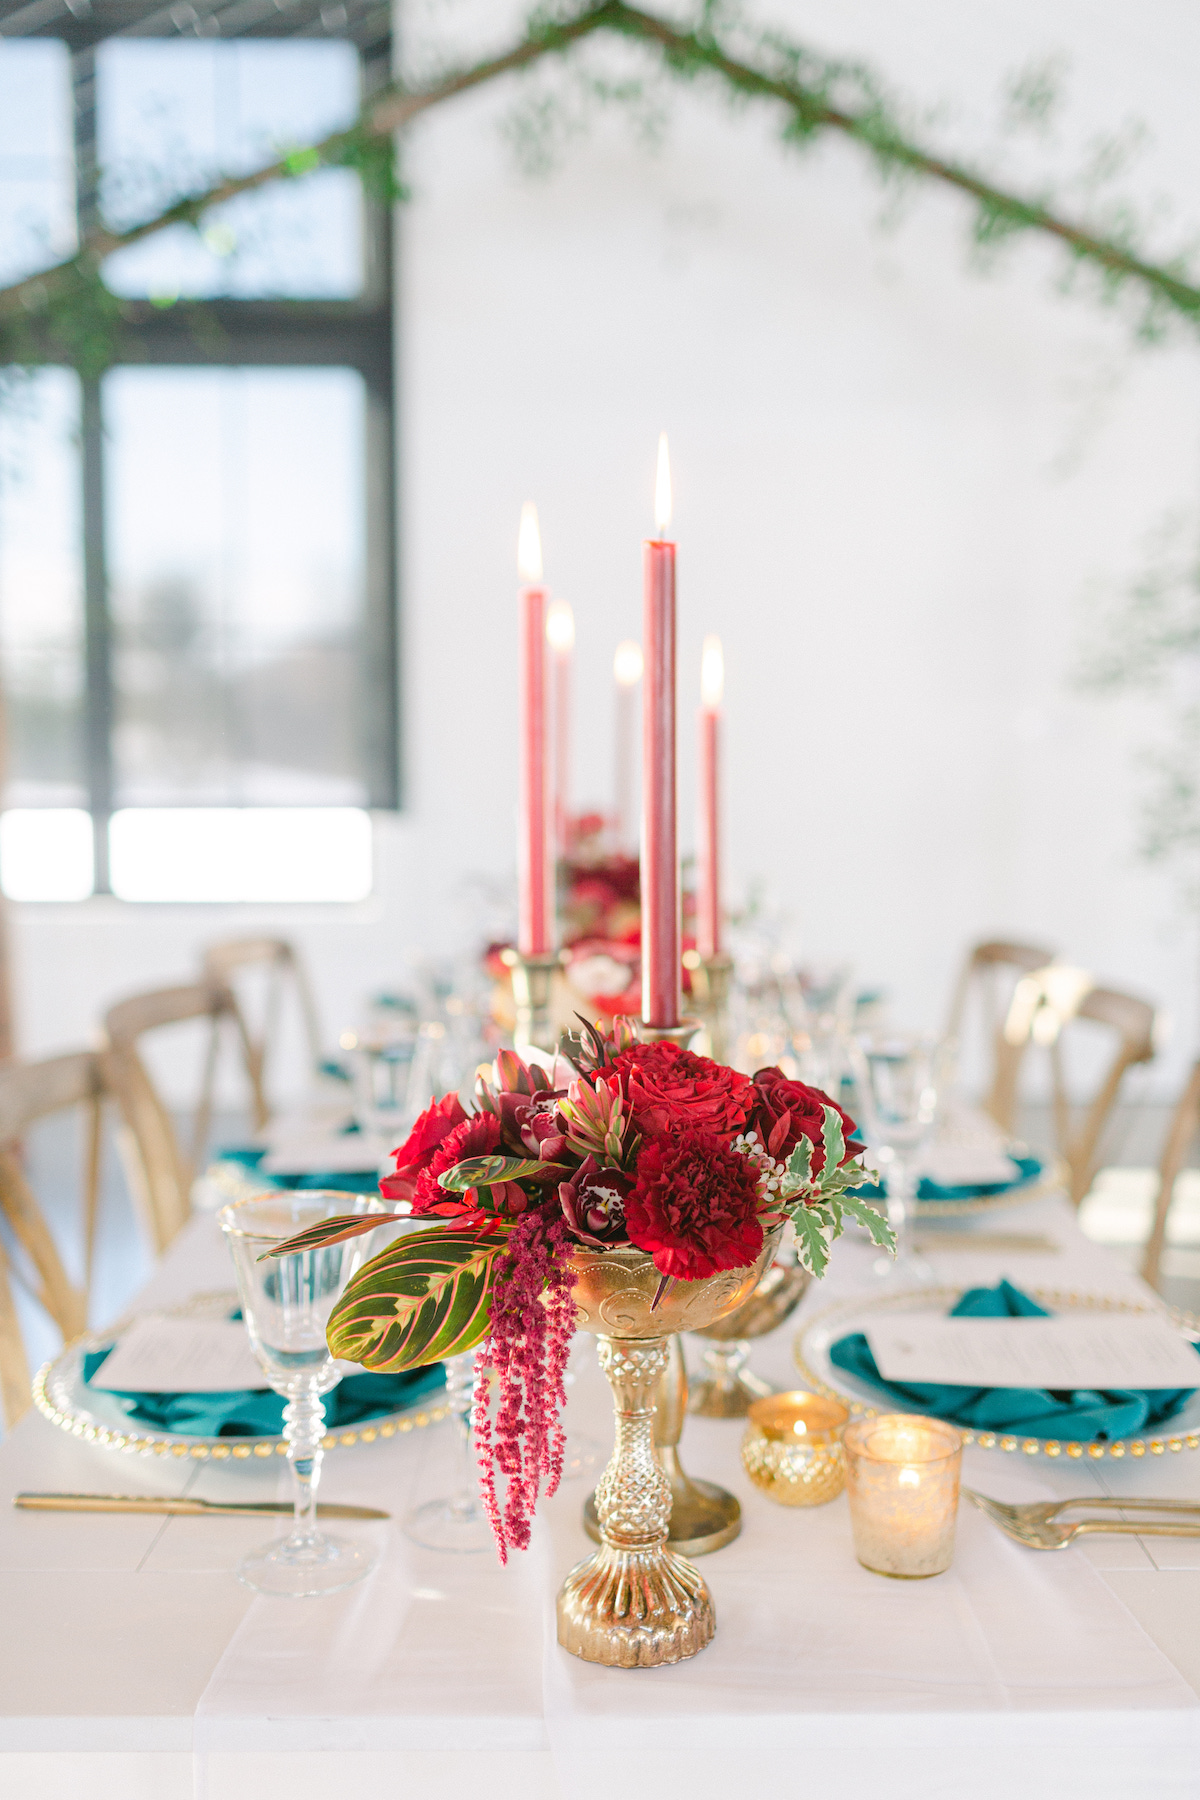 Long wedding table decor with red flowers - 5th Fine Art Photography